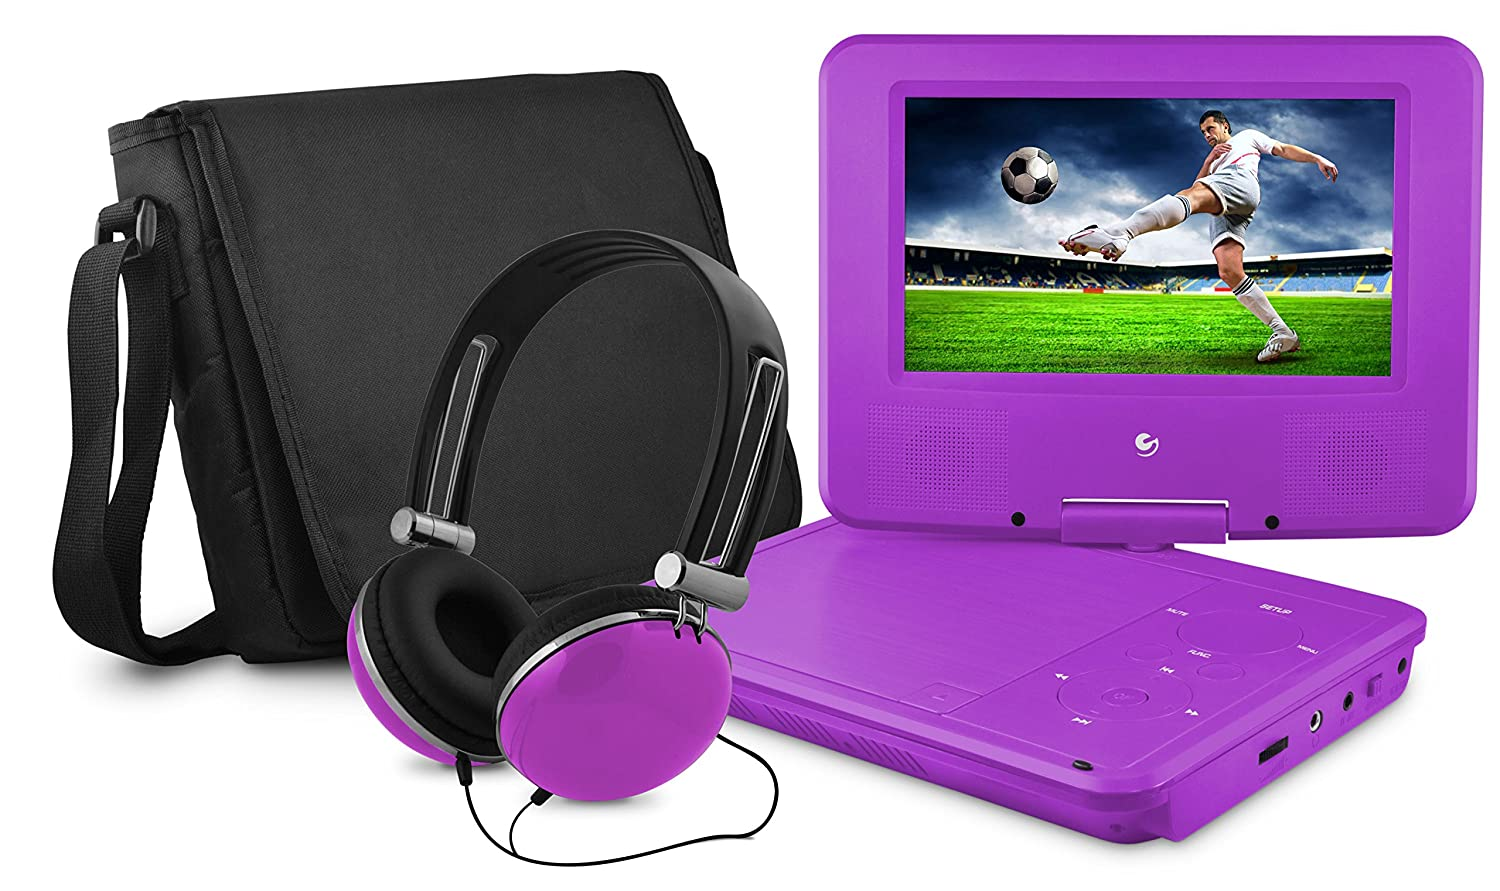 DVD Player, Ematic 7 inch Swivel Purple Portable DVD Player with Matching Headphones and Bag ( EPD707PR )